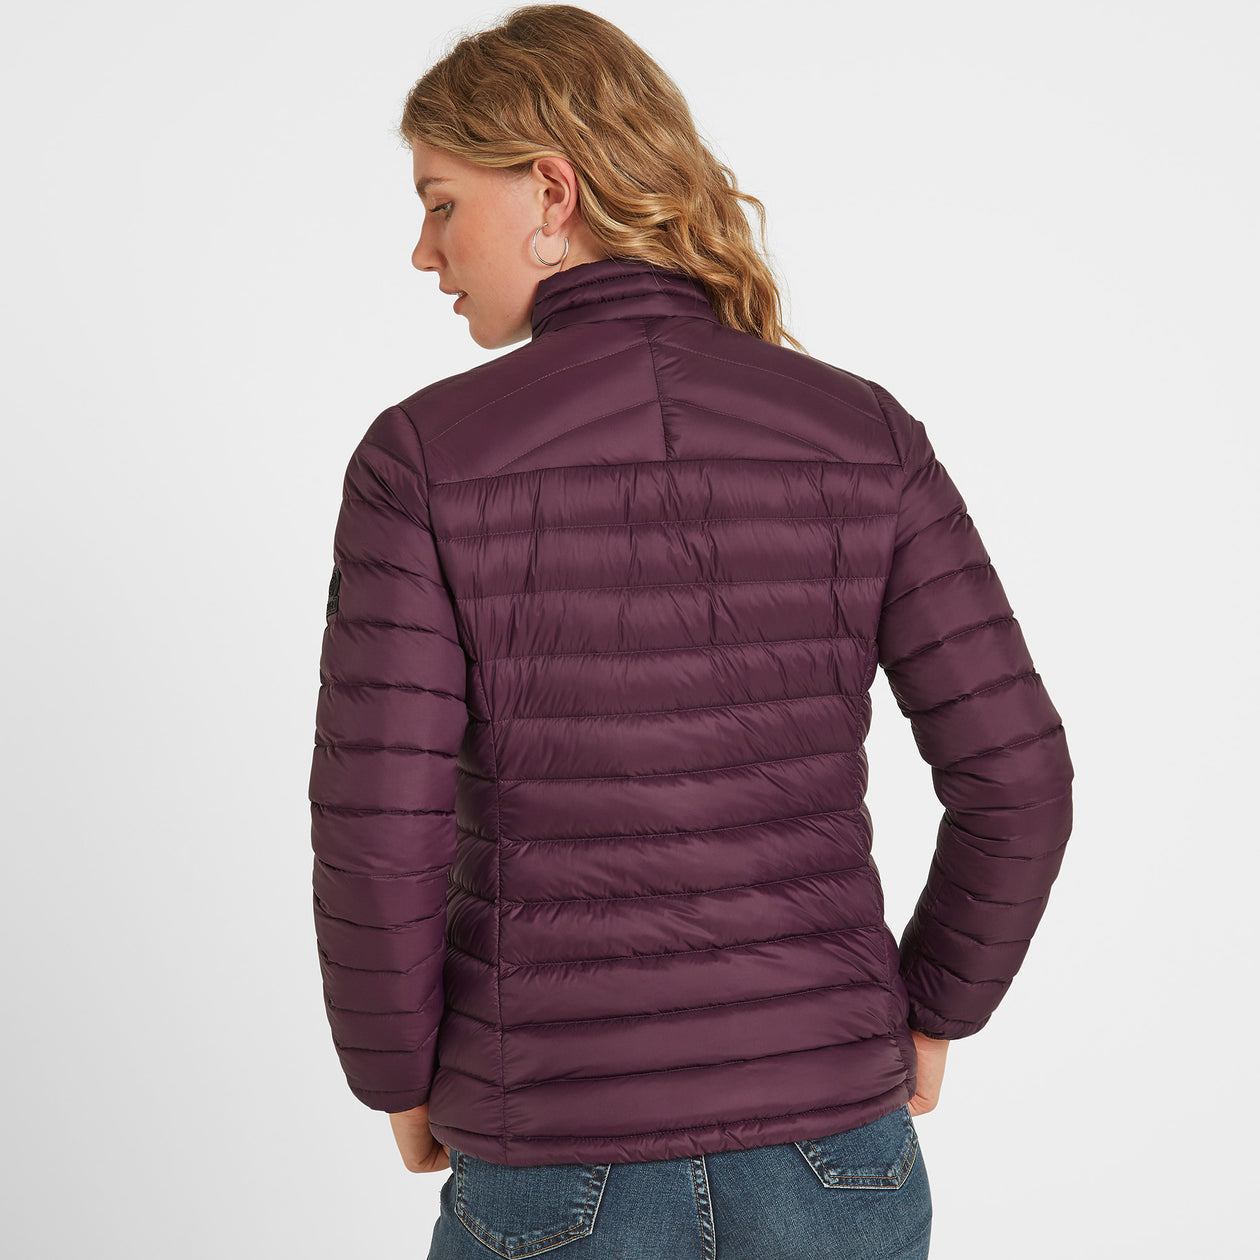 Drax Womens Funnel Down Jacket - Aubergine image 4